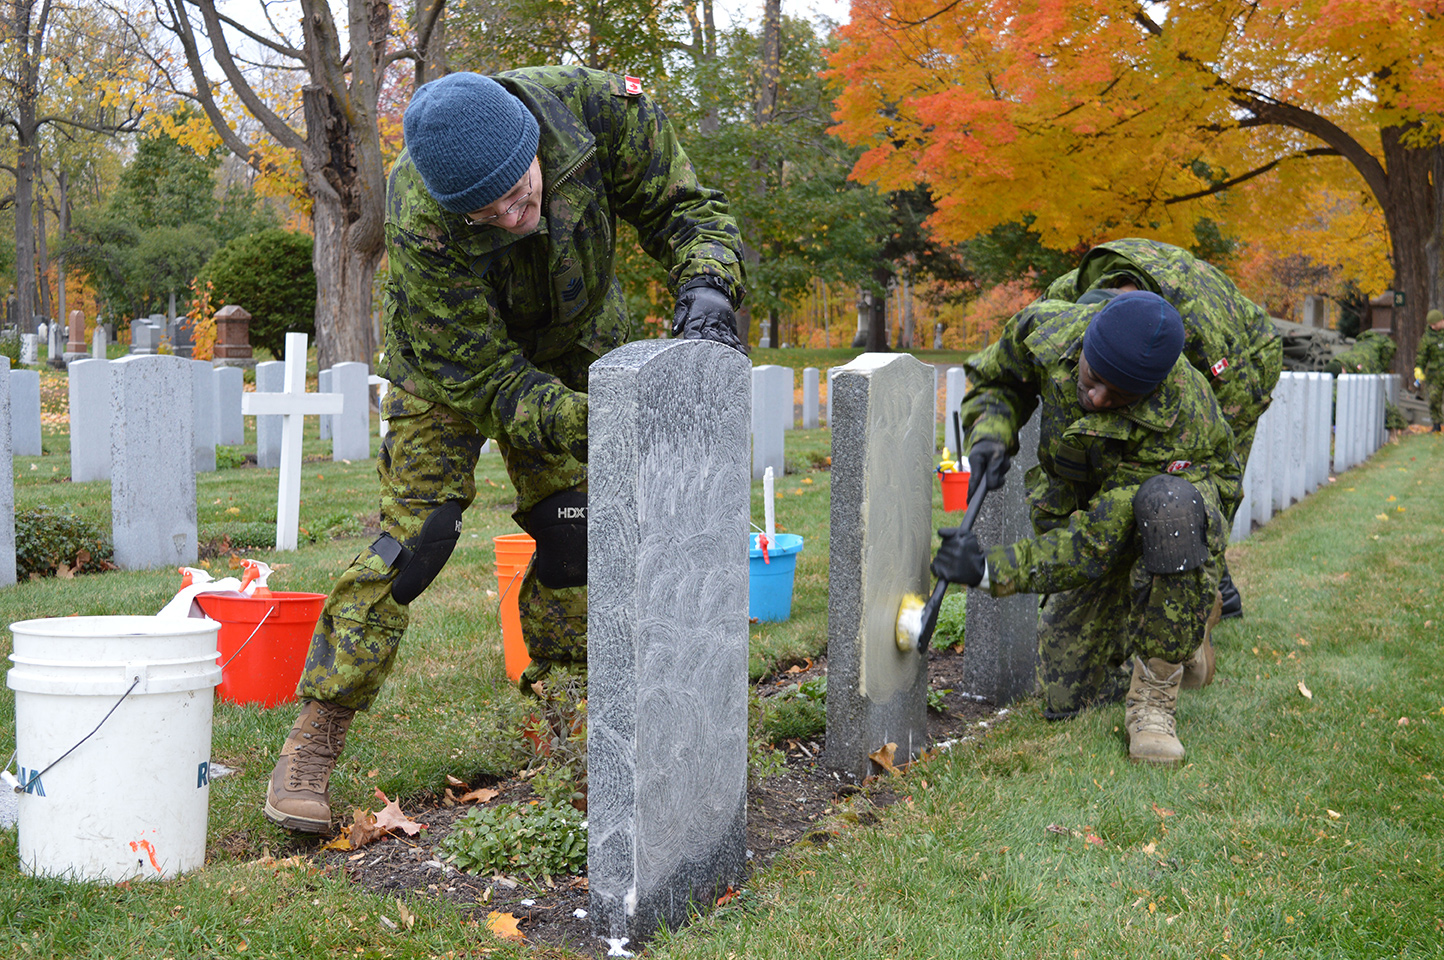 Sergeant Graham Frampton (left), and Captain Alban Massimba clean veterans' headstones at the National Military Cemetery in Ottawa on Oct. 27. Photo by: Jeanne Gagnon, Guard of Honour Newspaper